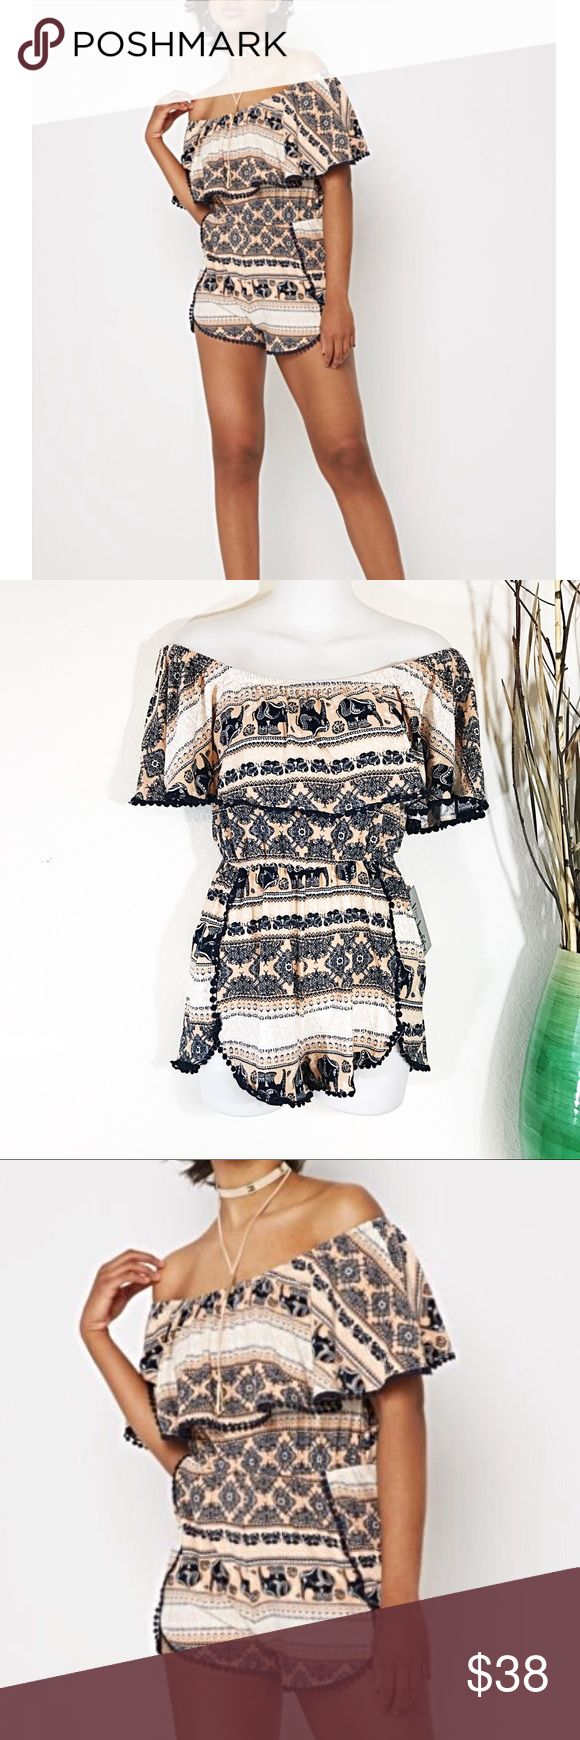 NEW Soft Elephant OffShoulder Ruffle Romper Jumper NEW Super Soft pink and navy Elephant Off Shoulder Ruffle Romper Jumper play suit. Small = 4-6. Medium 6-8 Large 8-10 new with tags. J for Justify Pants Jumpsuits & Rompers